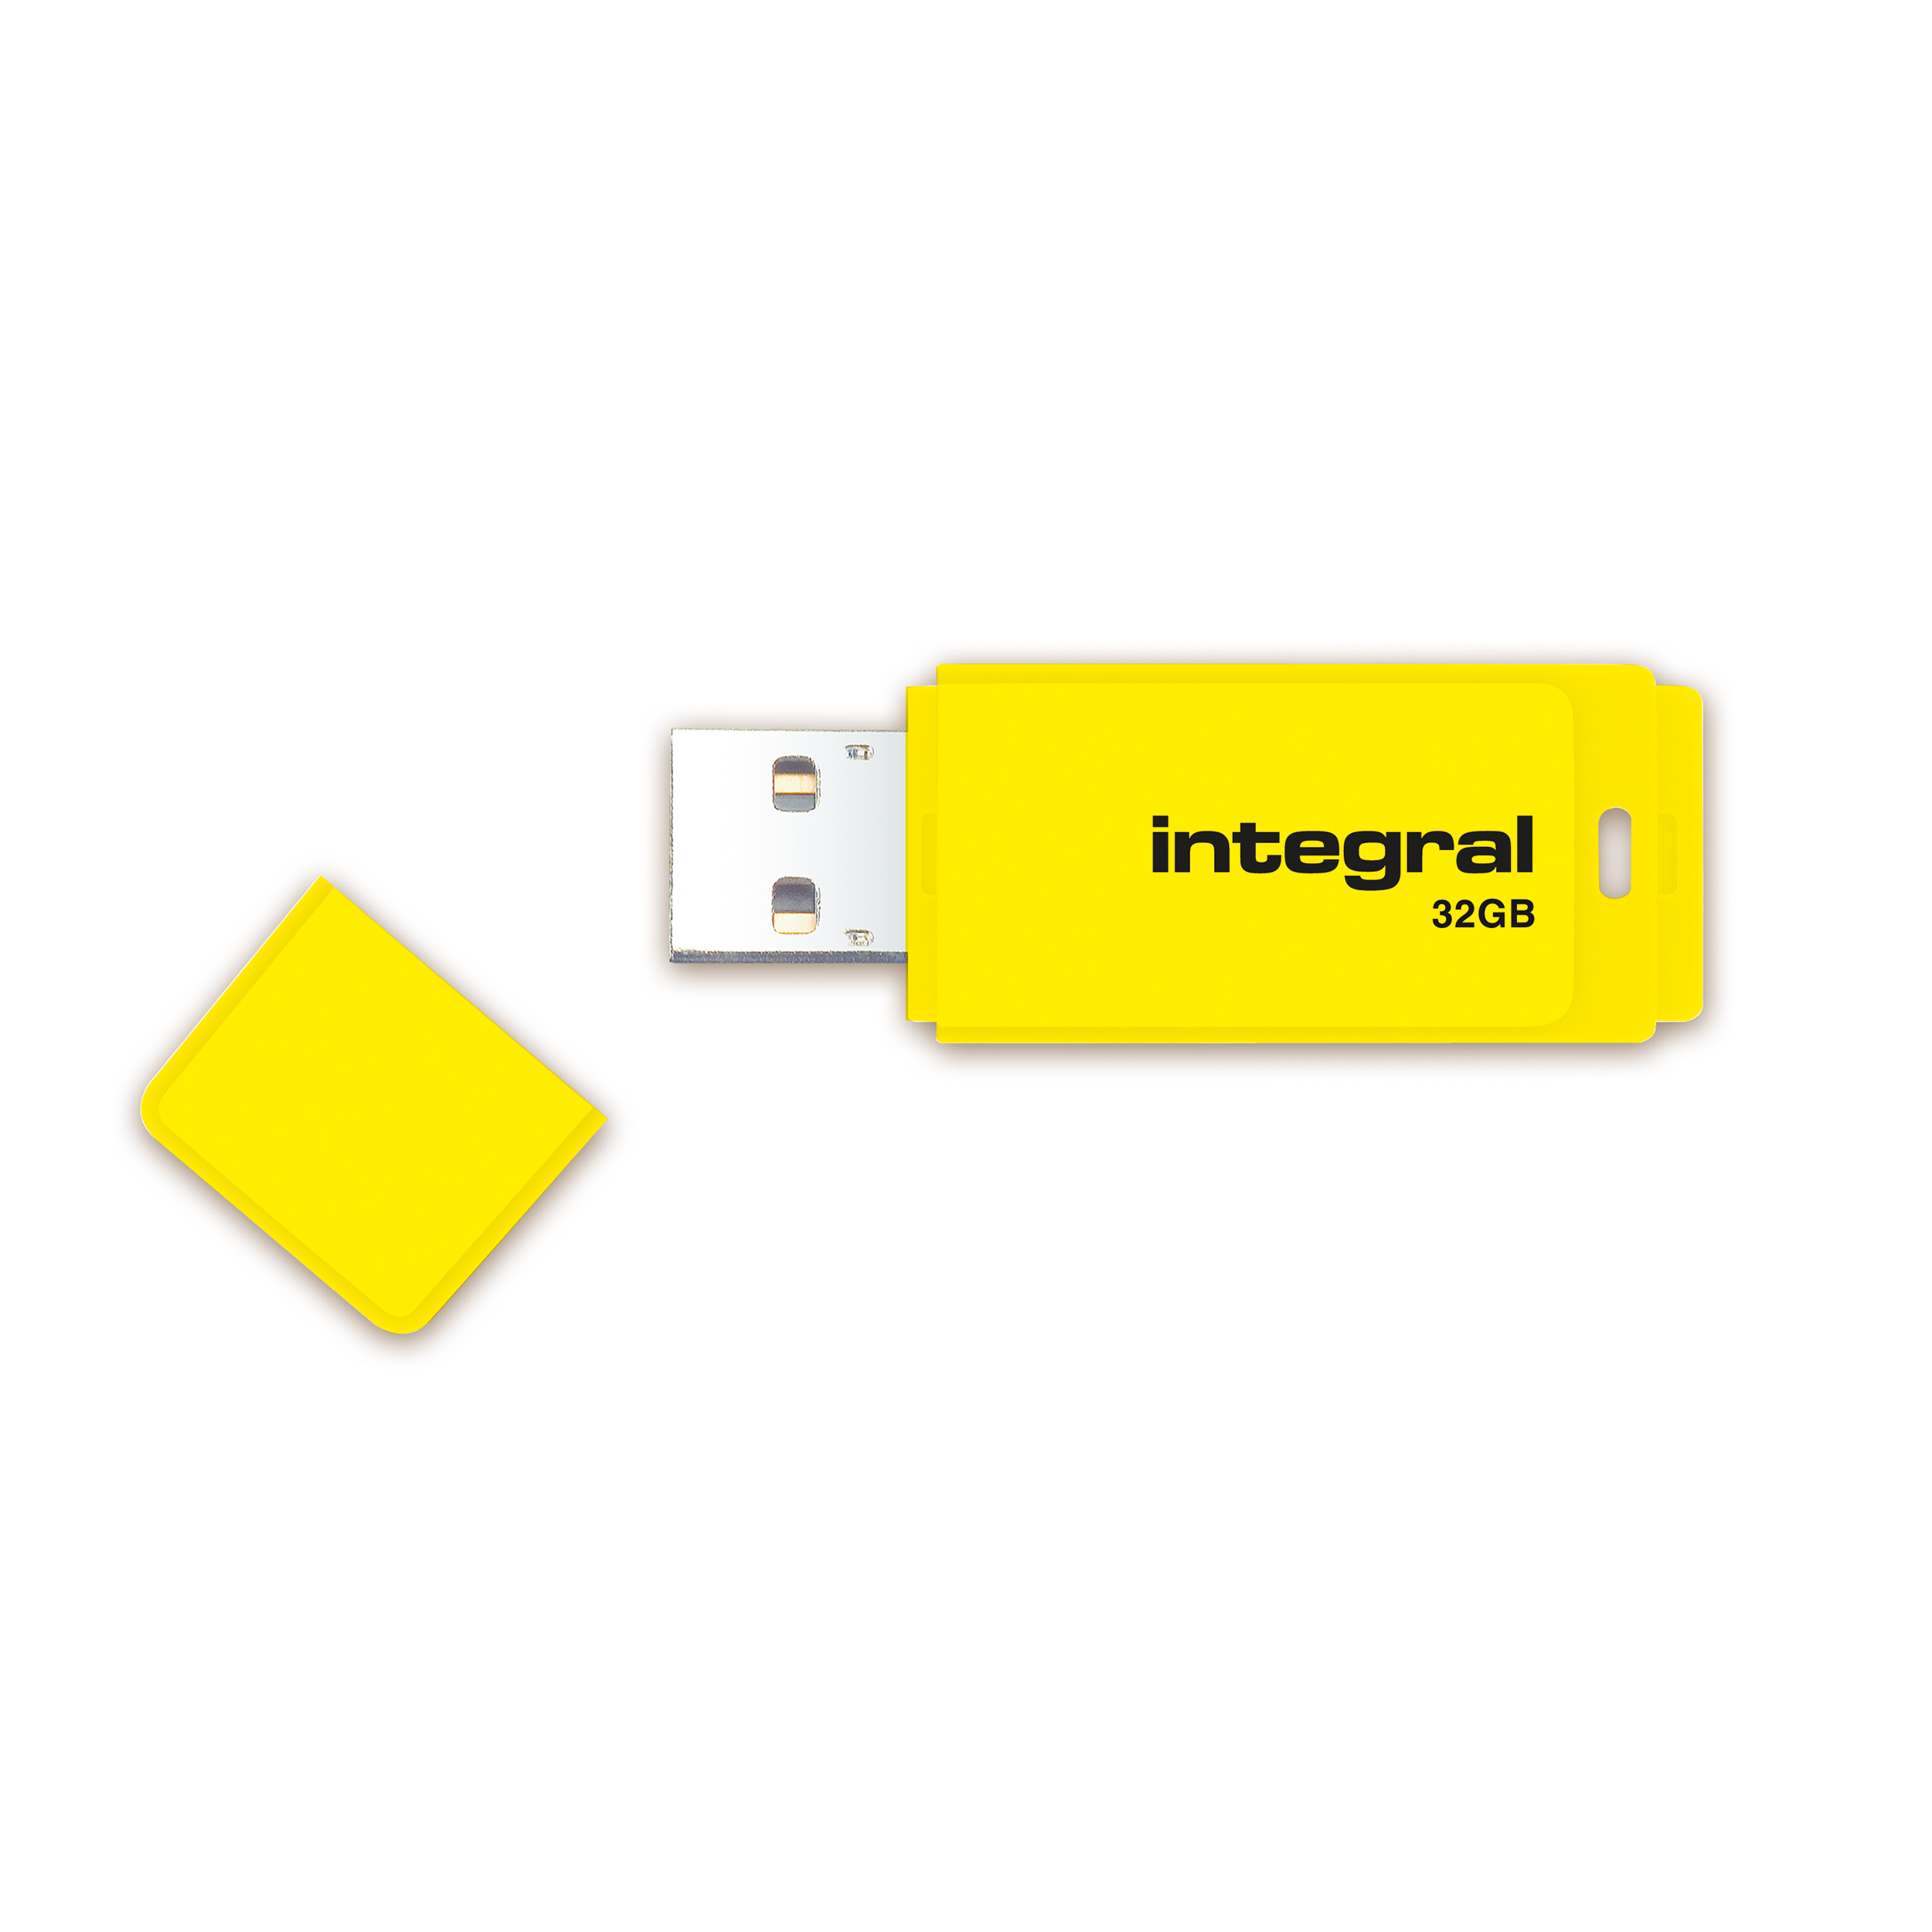 Integral Neon USB Drive 2.0 32GB Yellow Ref INFD32GBNEONYL